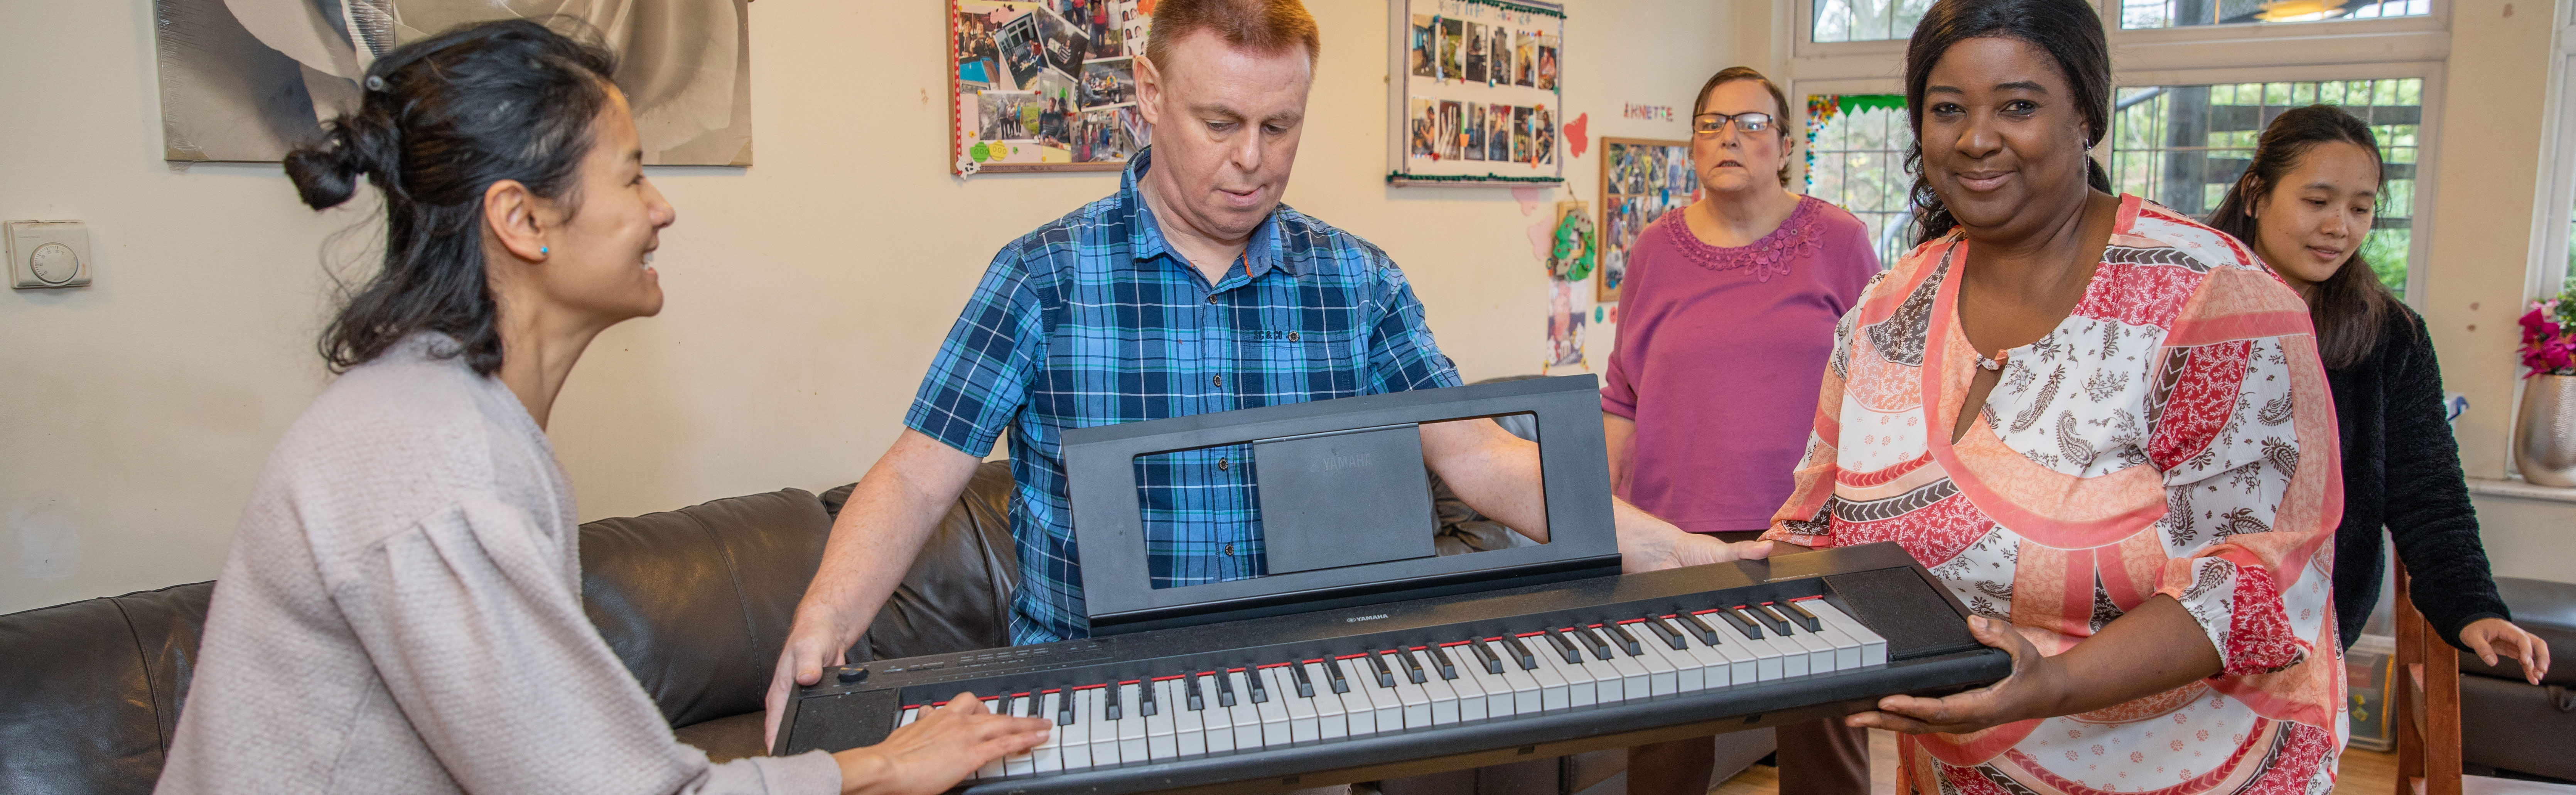 Carers give client keyboard as a present